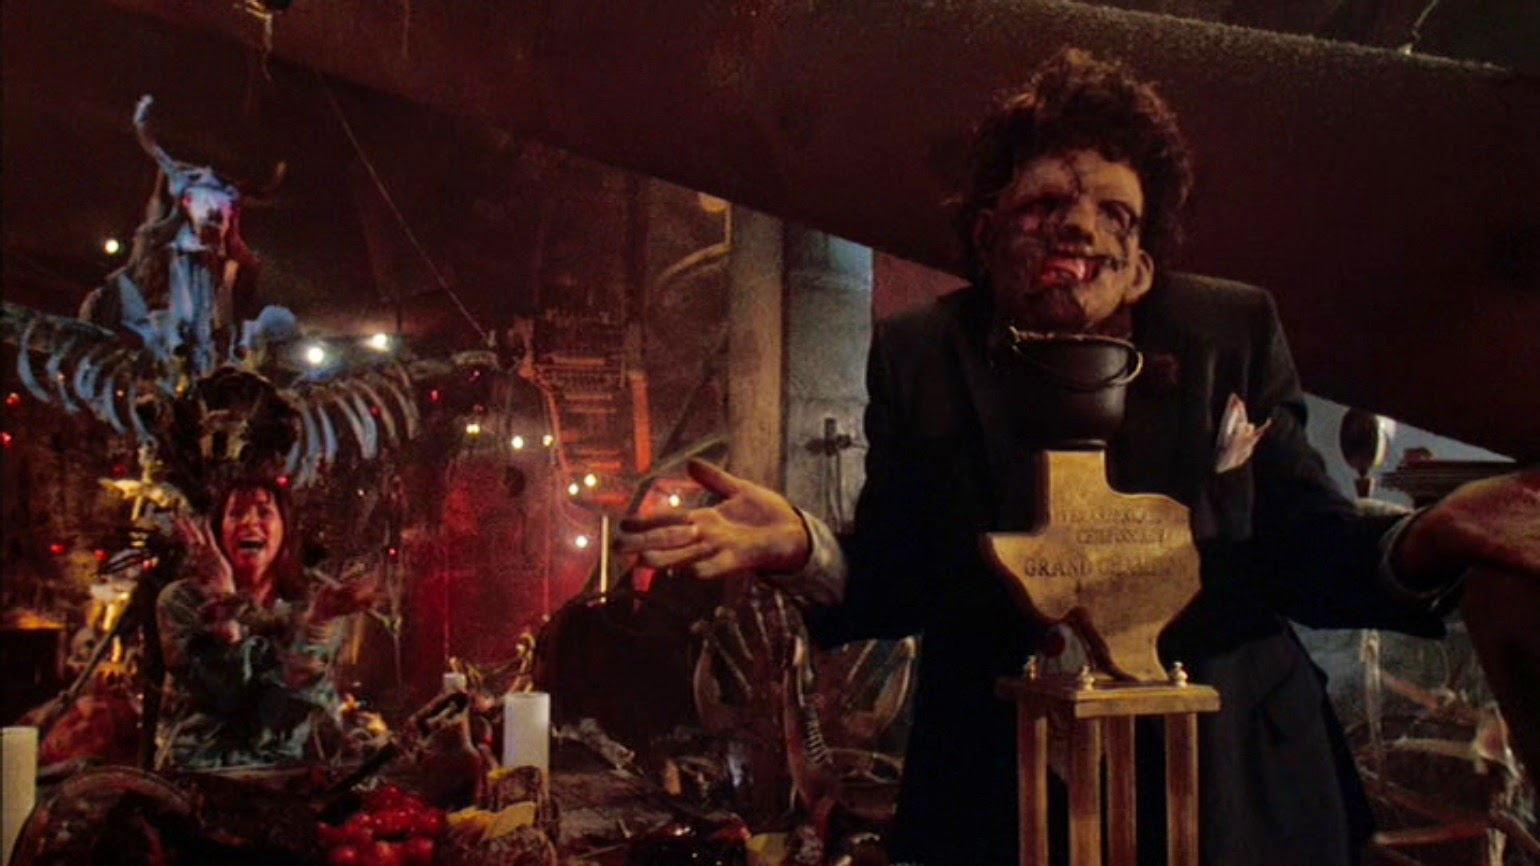 the texas chainsaw massacre 2 1986 81 The Cannon Canon: The Top 20 Cannon Films